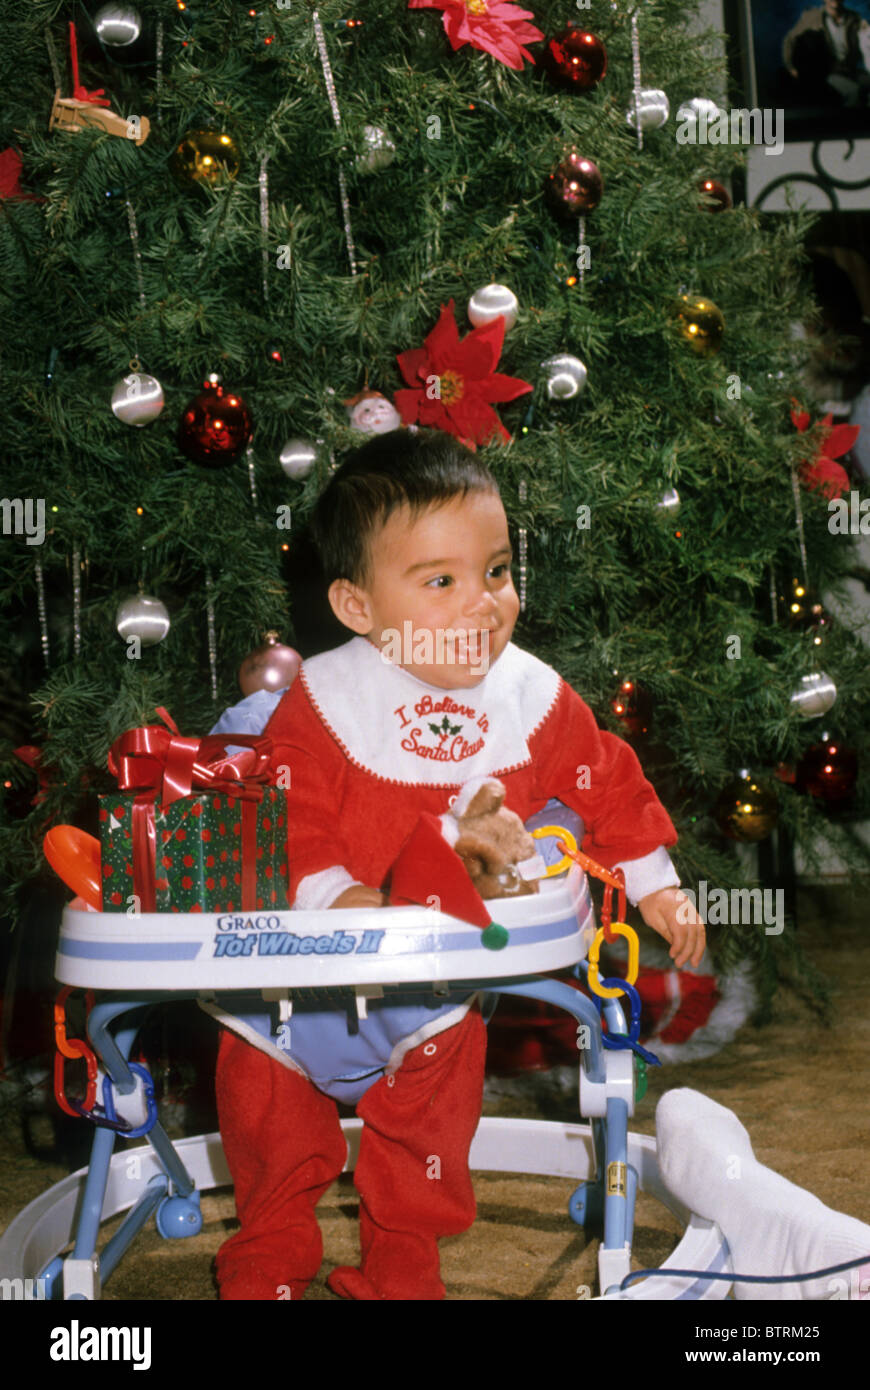 Hispanic baby boy Christmas tree costume smile happy laugh toy gift seat holiday event  sc 1 st  Alamy & Hispanic baby boy Christmas tree costume smile happy laugh toy gift ...